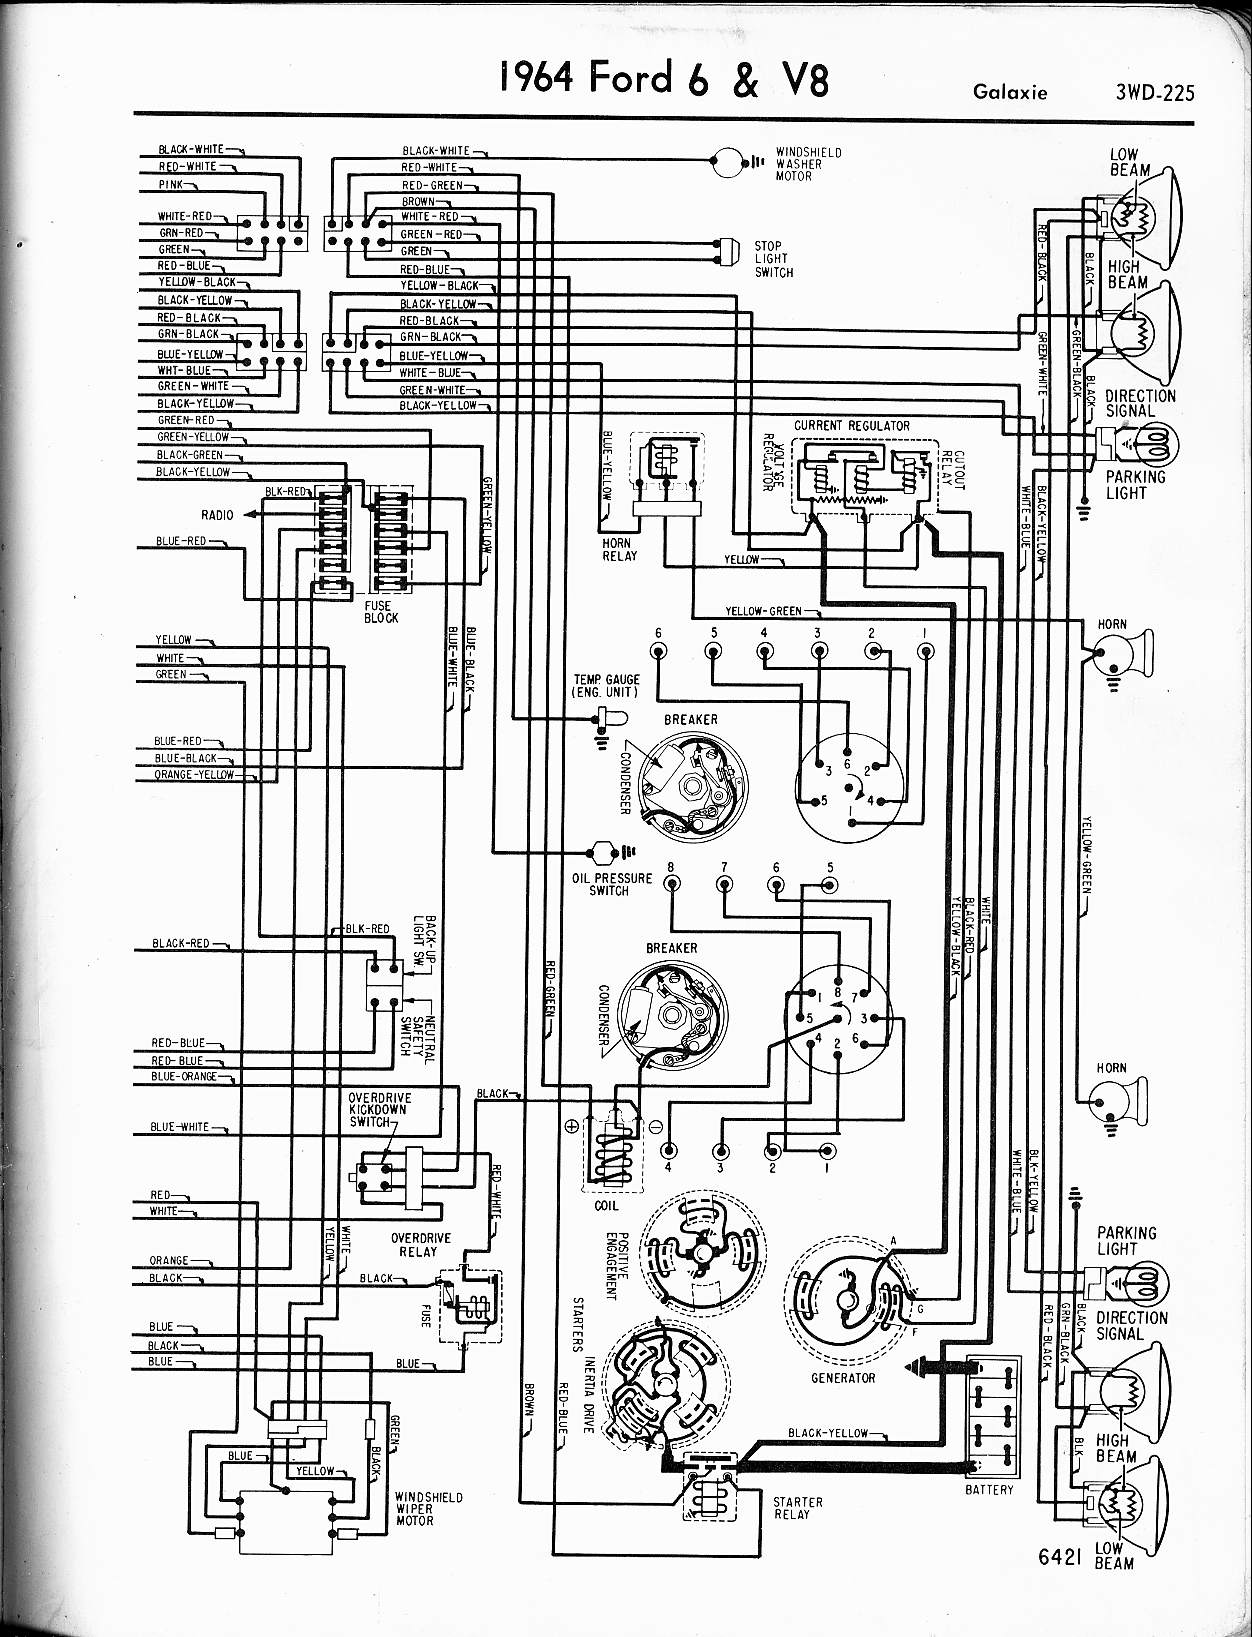 Radio Wiring Color Code Also Kia Rio Radio Wiring Diagram Additionally